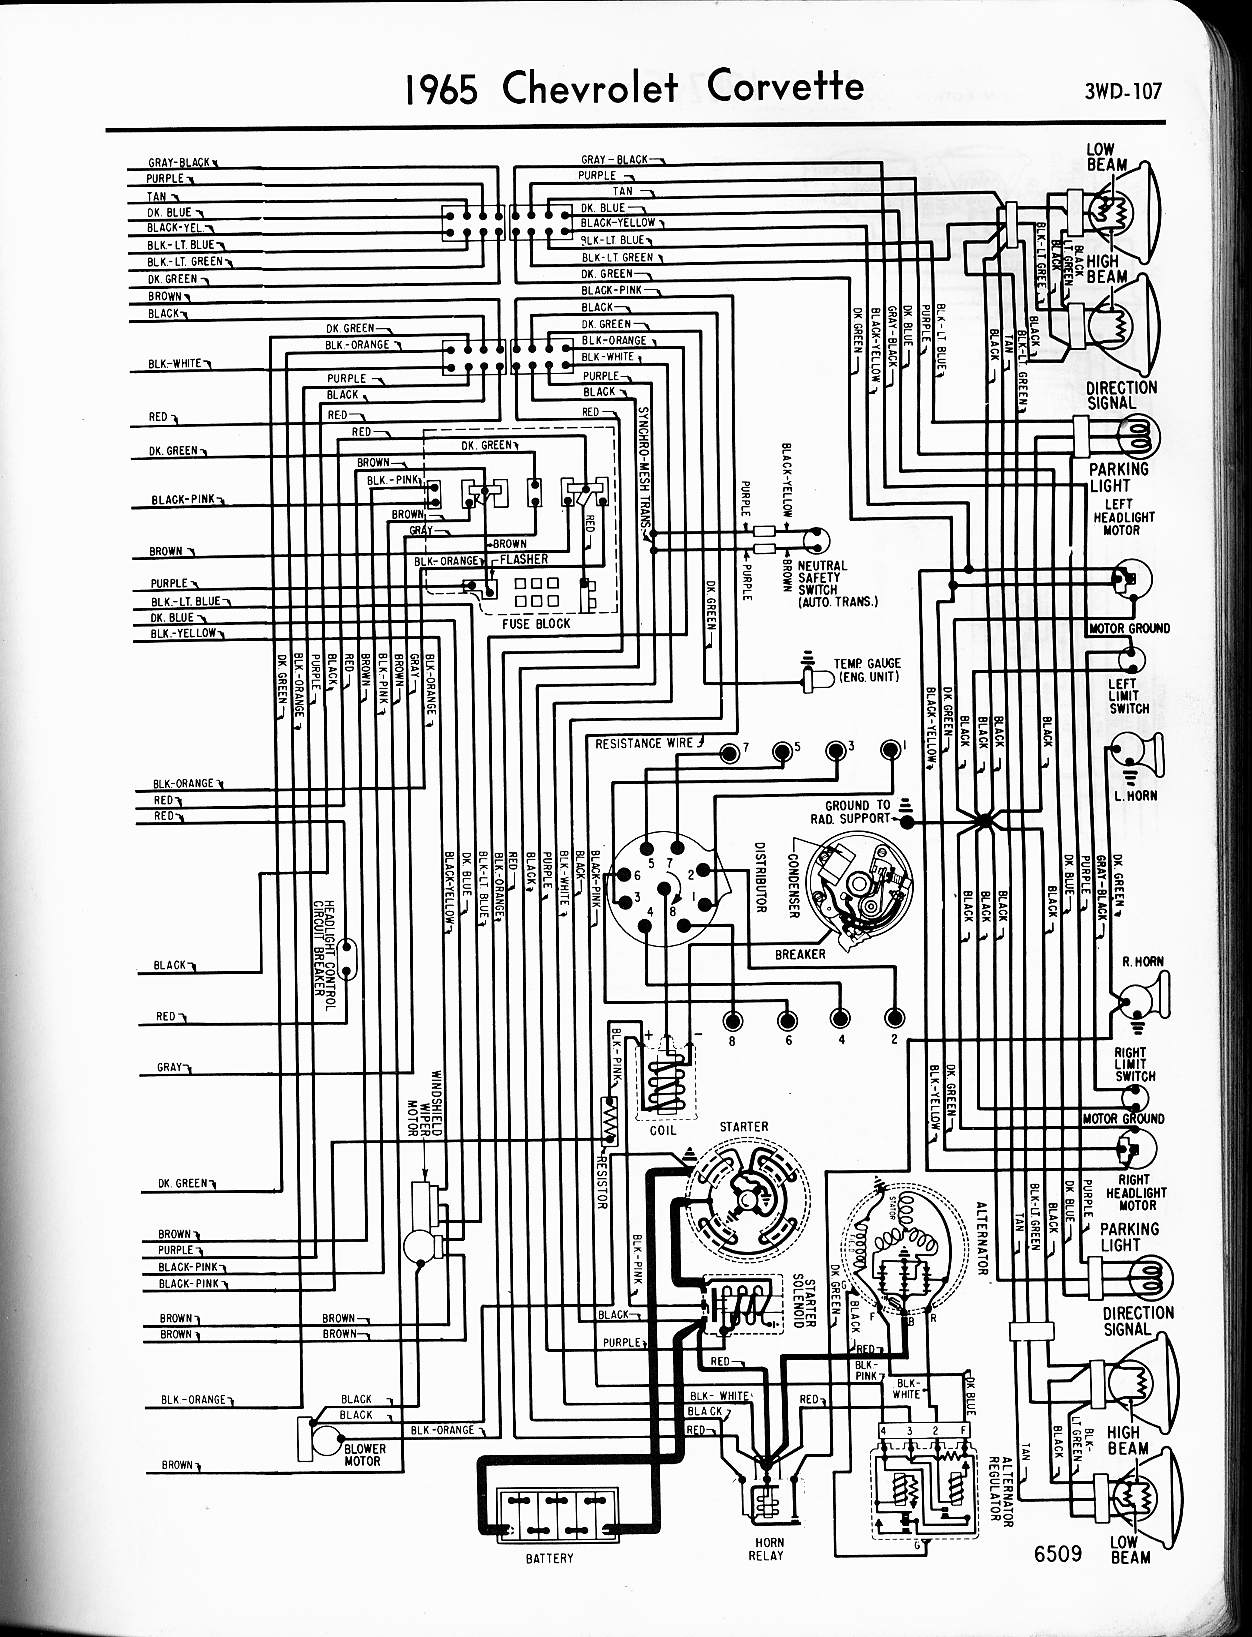 hight resolution of 1974 corvette wiring diagram trusted wiring diagram rh 12 nl schoenheitsbrieftaube de 1975 corvette wiring diagram 74 corvette starter relay